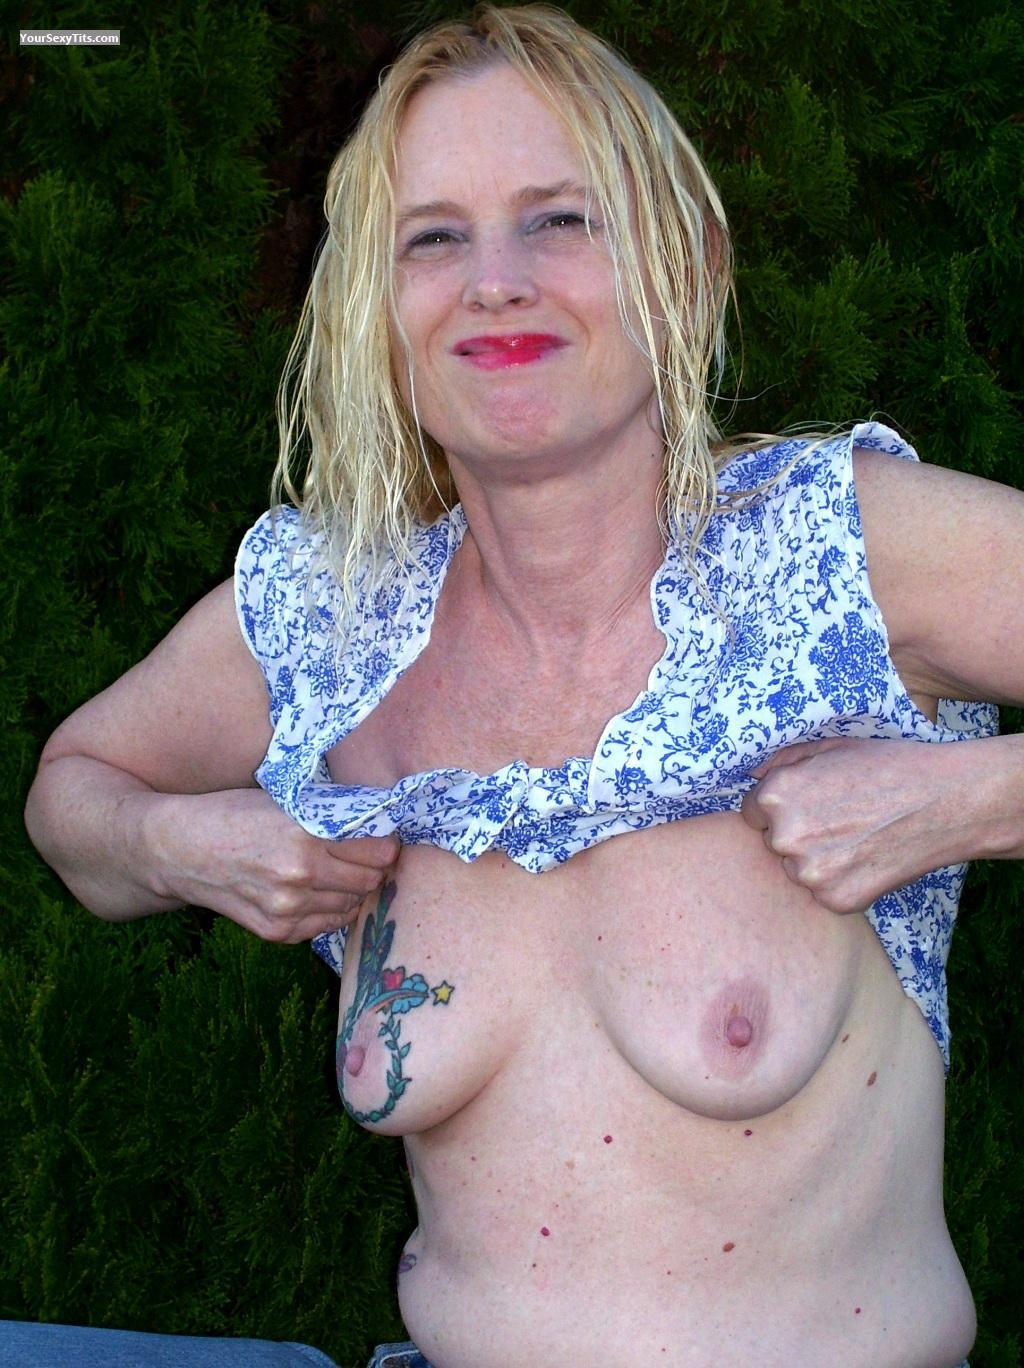 Medium Tits Topless Little Miss Linda